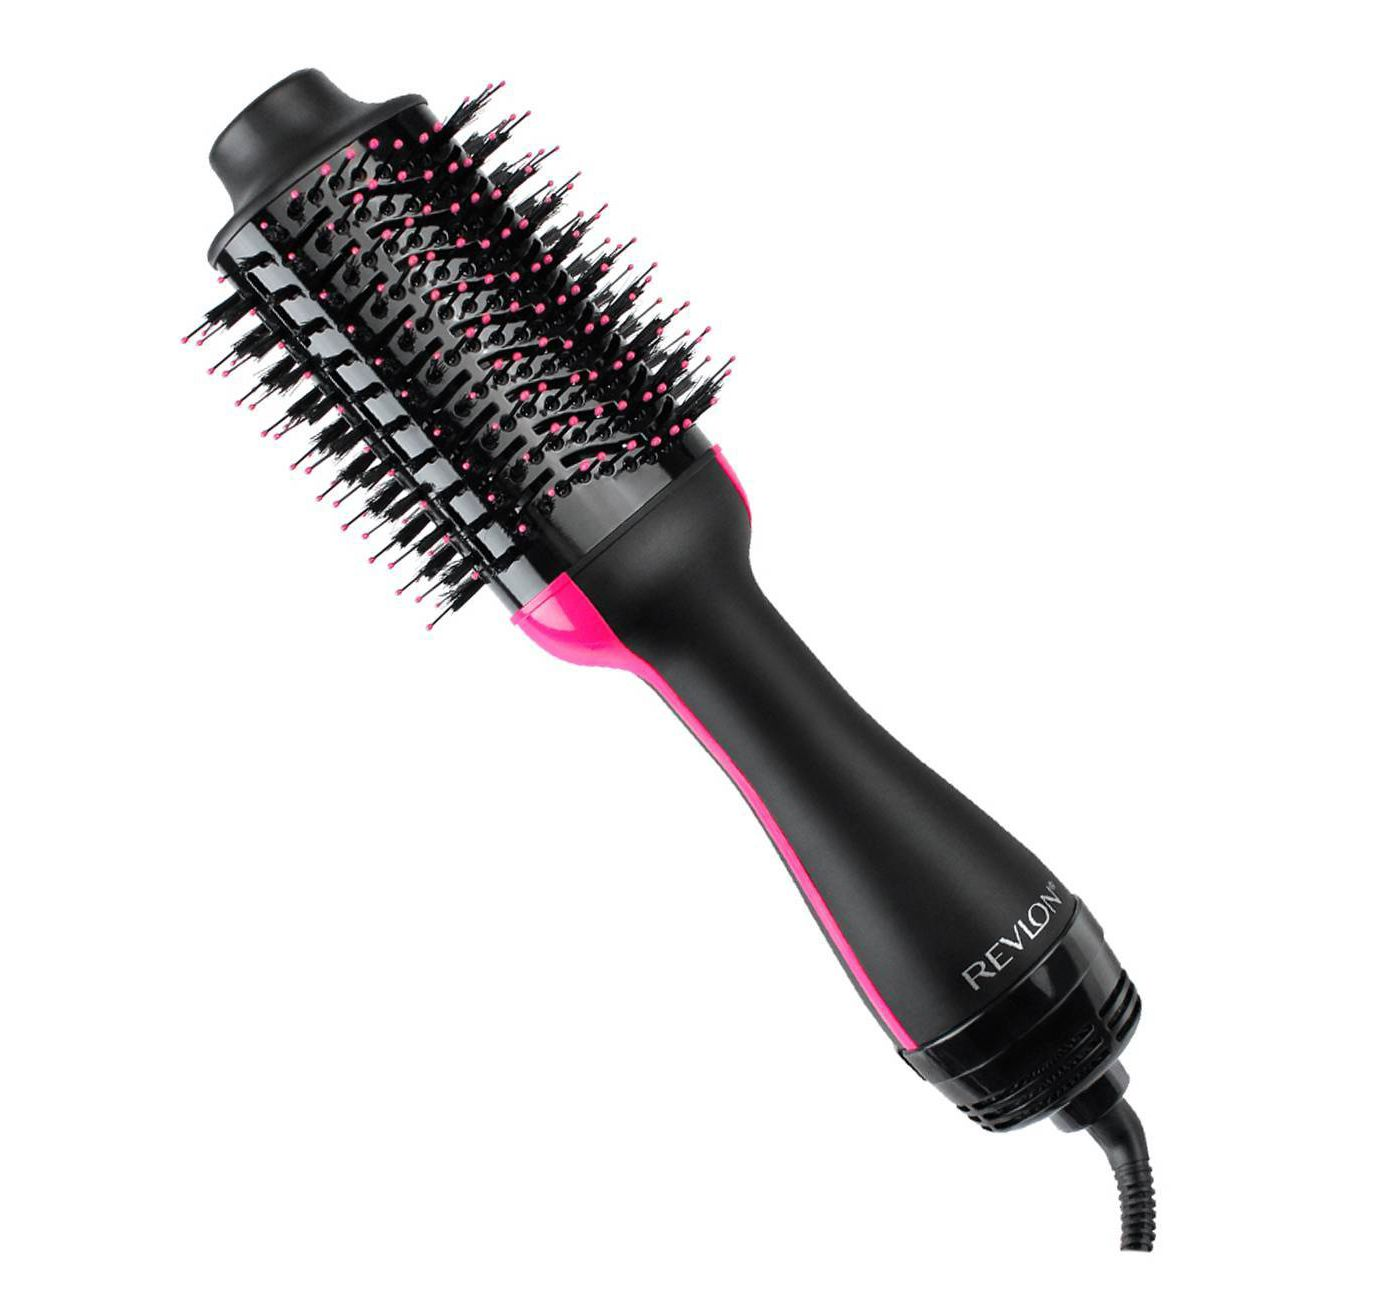 Revlon Salon One-Step Hair Dryer and Volumizer gift idea for mom